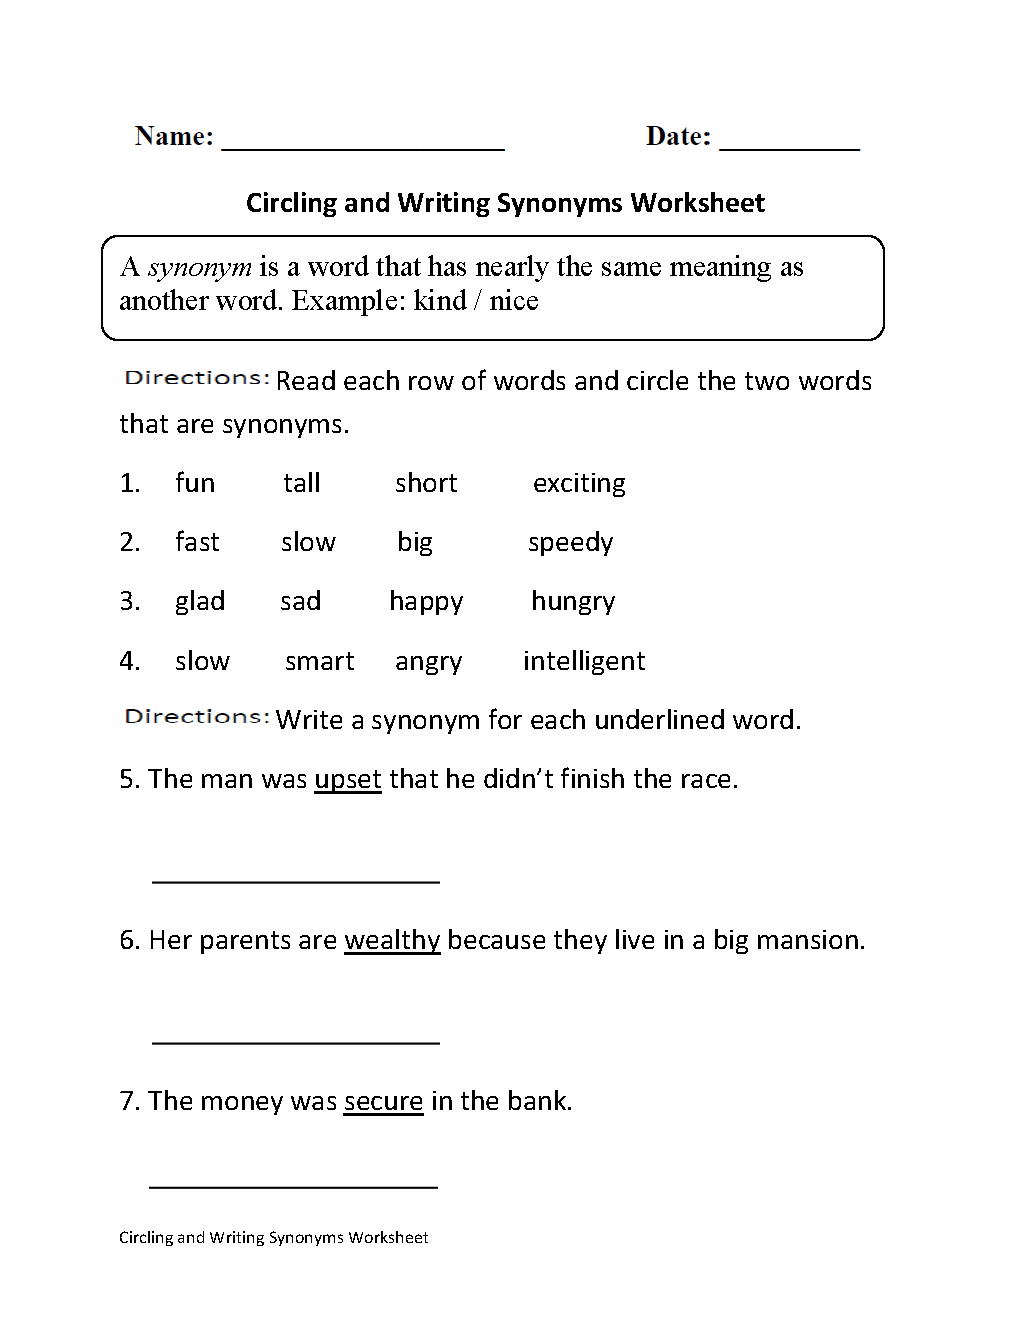 Worksheet Synonyms Worksheet englishlinx com synonyms worksheets worksheet